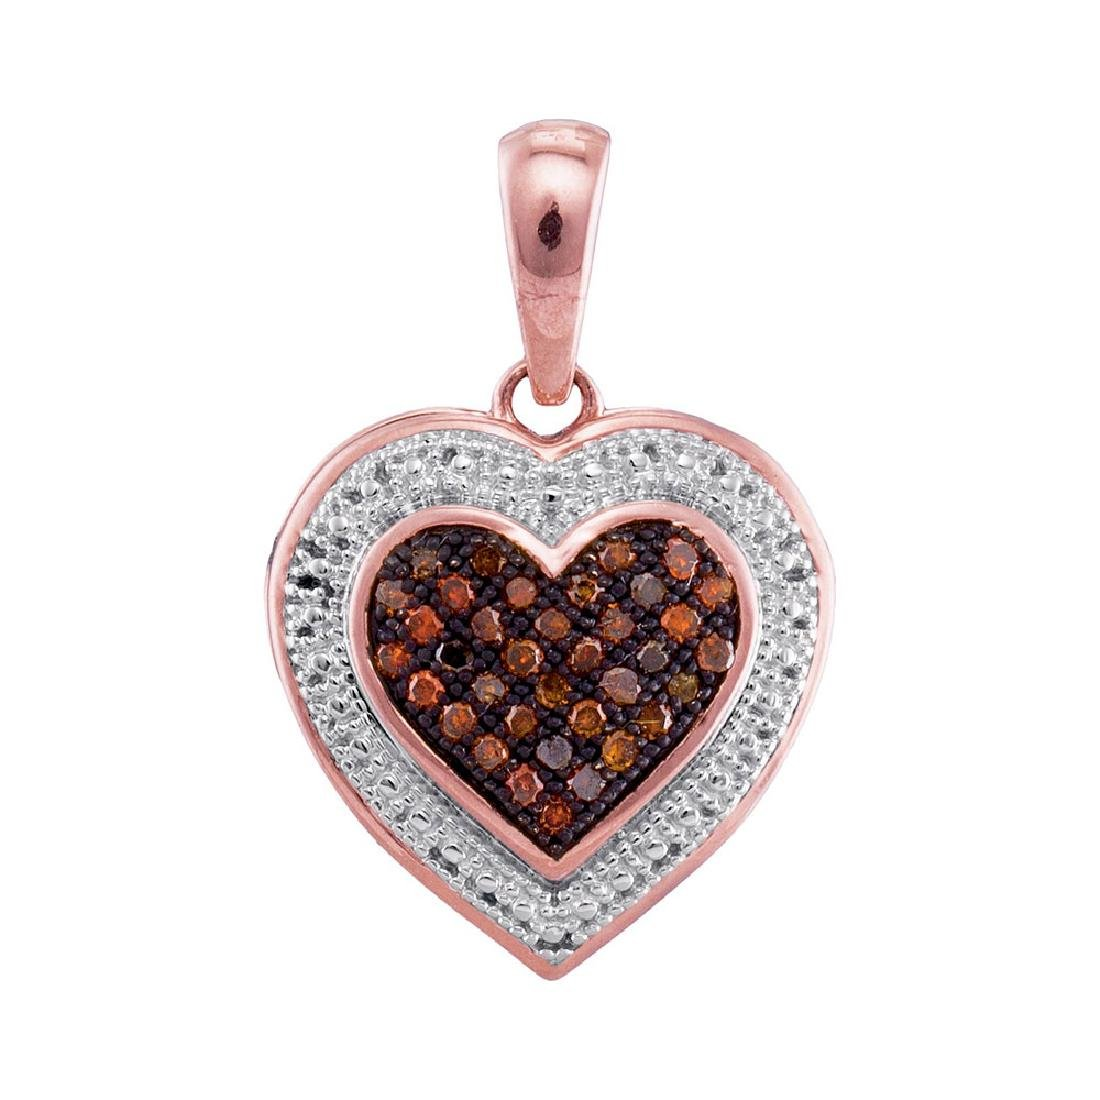 0.12 CTW Red Color Diamond Heart Love Pendant 10KT Rose